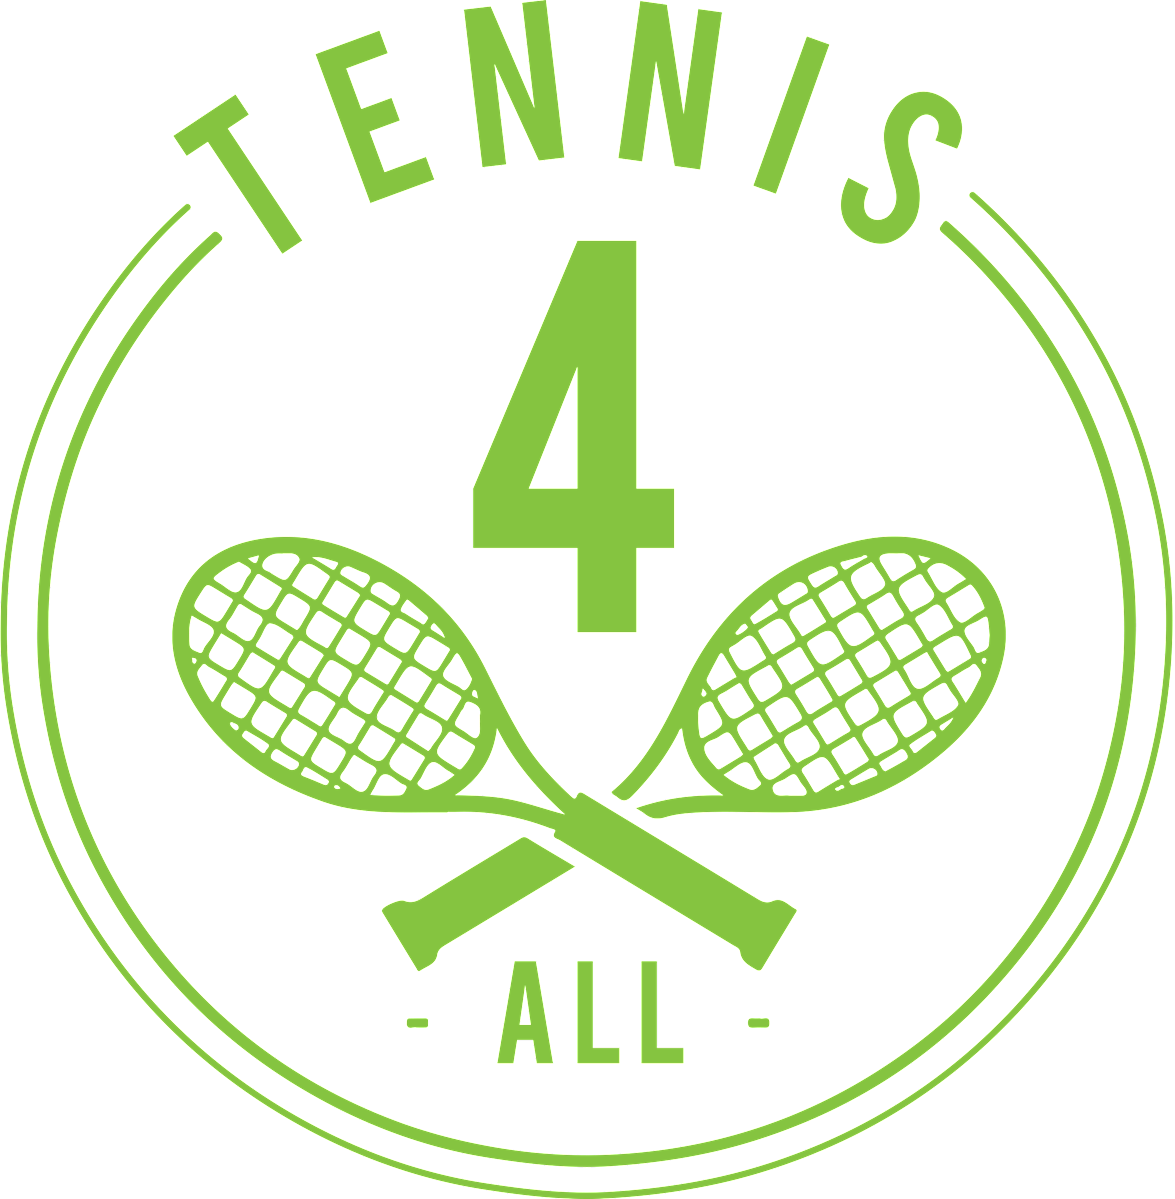 Northampton Tennis 4 All